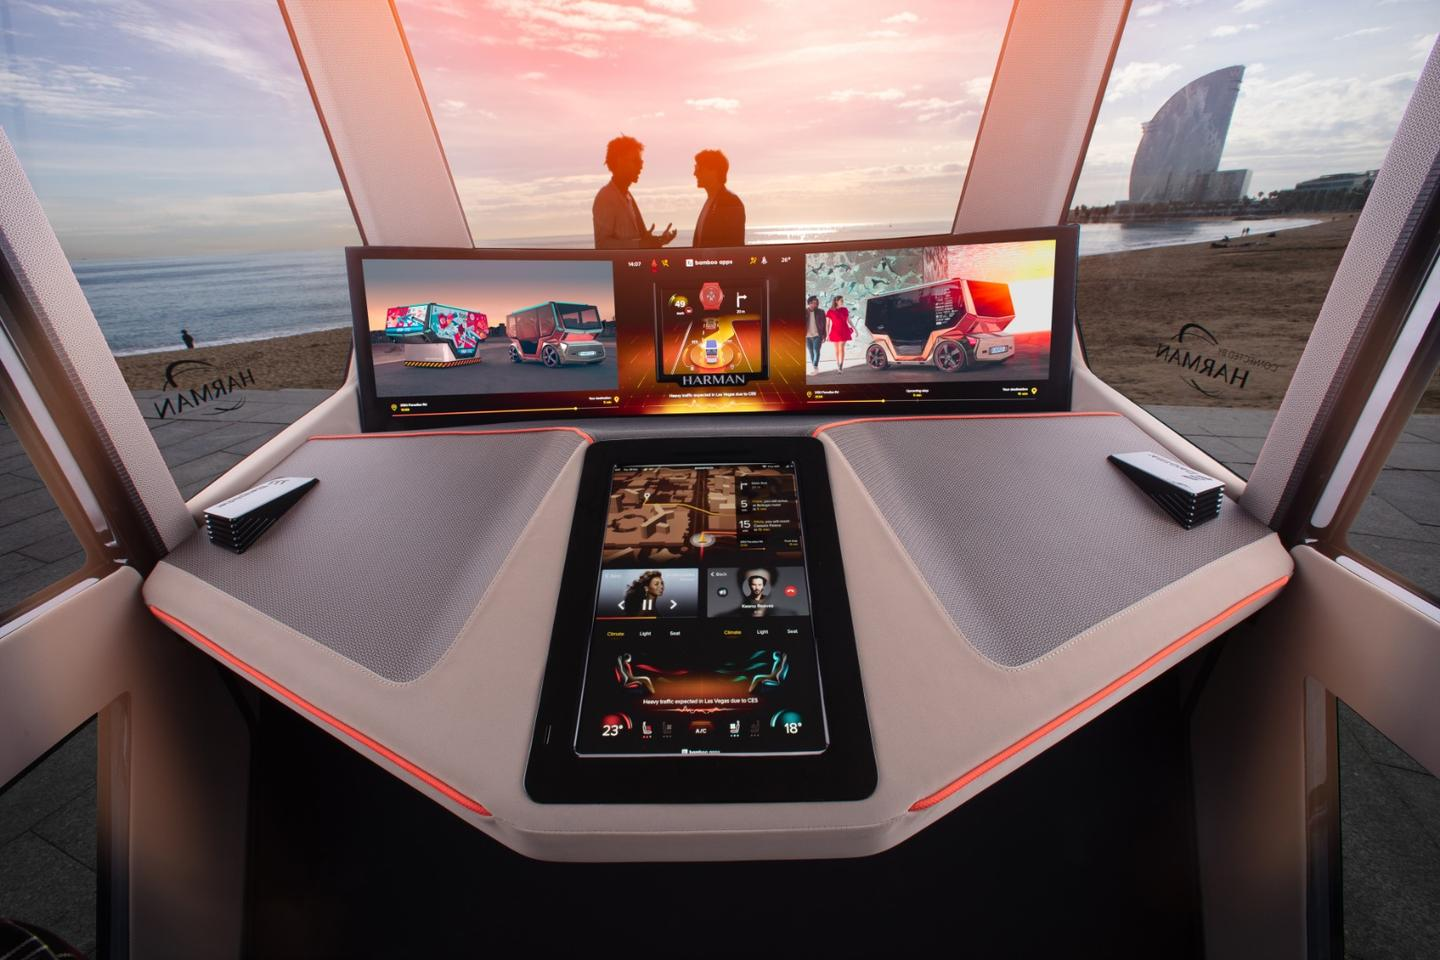 Acurved 49-inch LED screen spans the entire width of the microSNAP'scabin